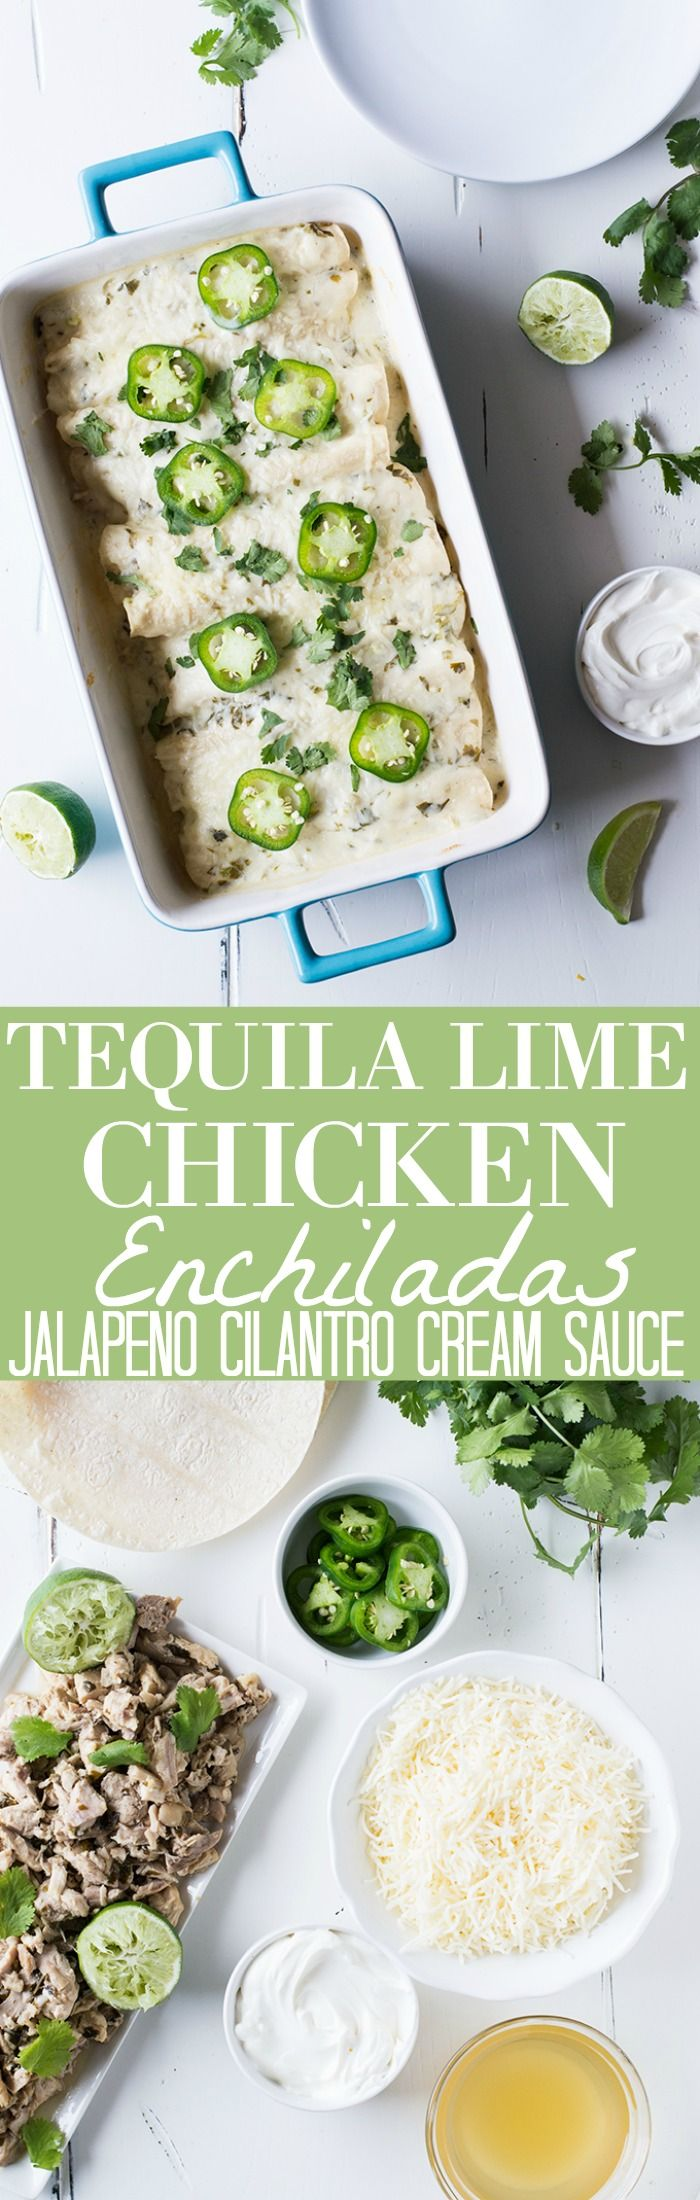 Tequila Lime Chicken Enchiladas With A Creamy Jalapeno Cilantro Sauce These Enchiladas Are So Flavorful